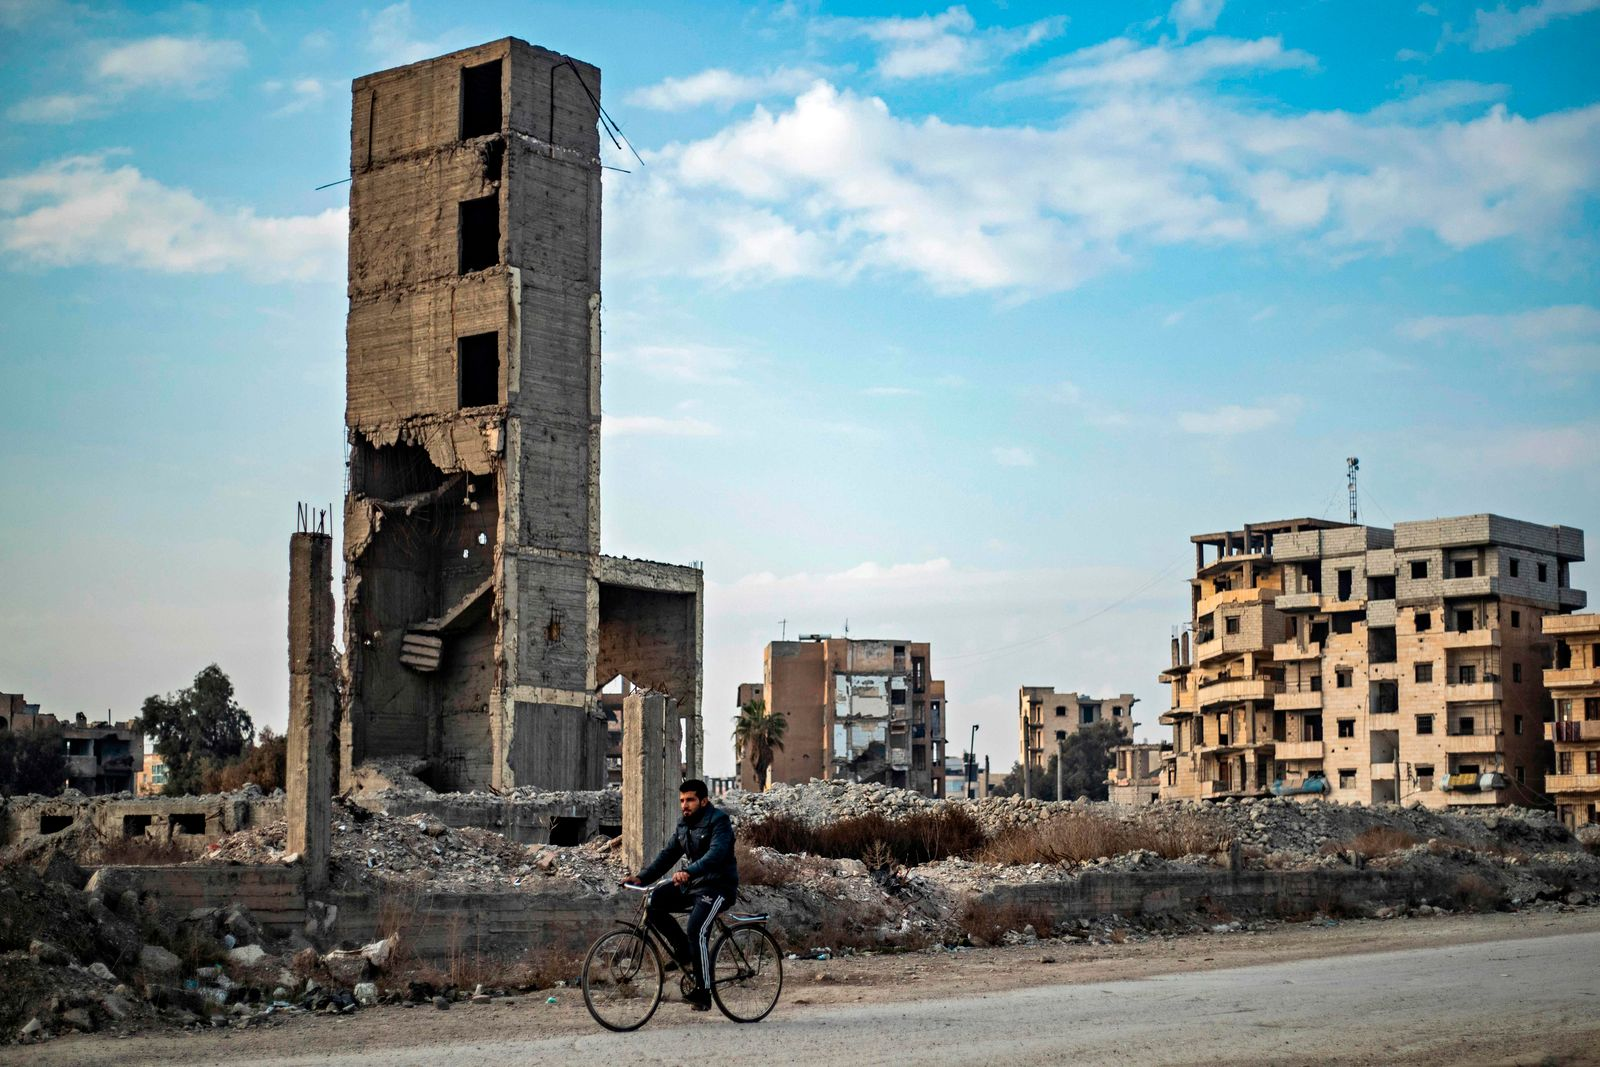 TOPSHOT-SYRIA-CONFLICT-DAILY LIFE-RAQA